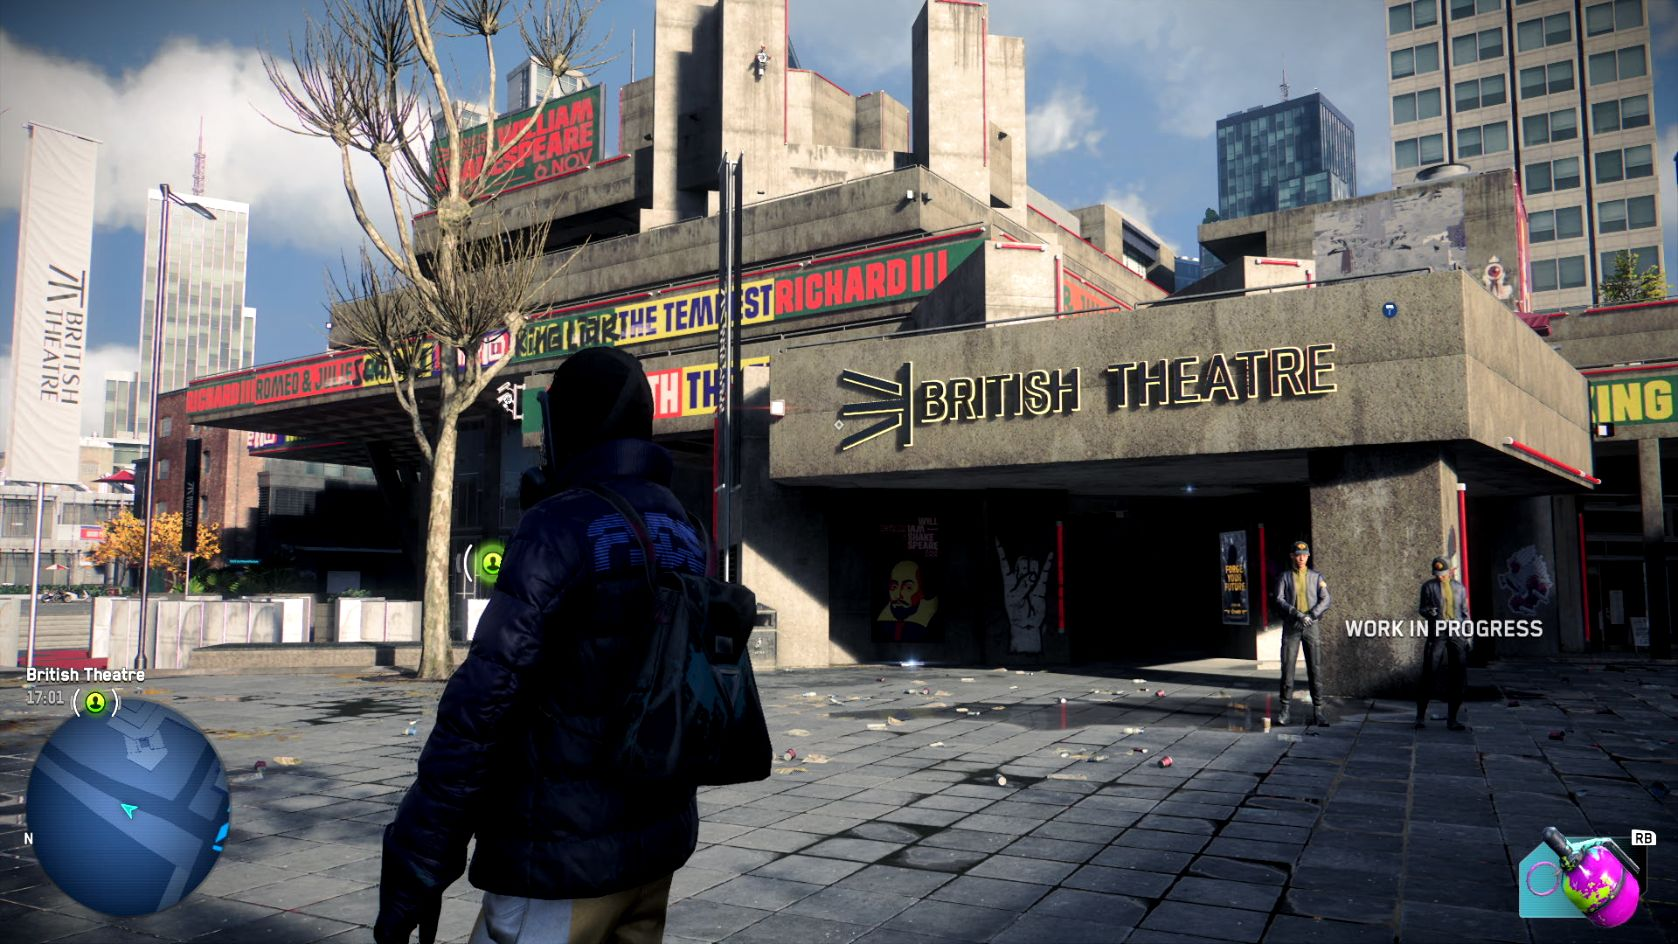 A screenshot showing Watch Dogs Legion's version of the National Theatre on London's South Bank